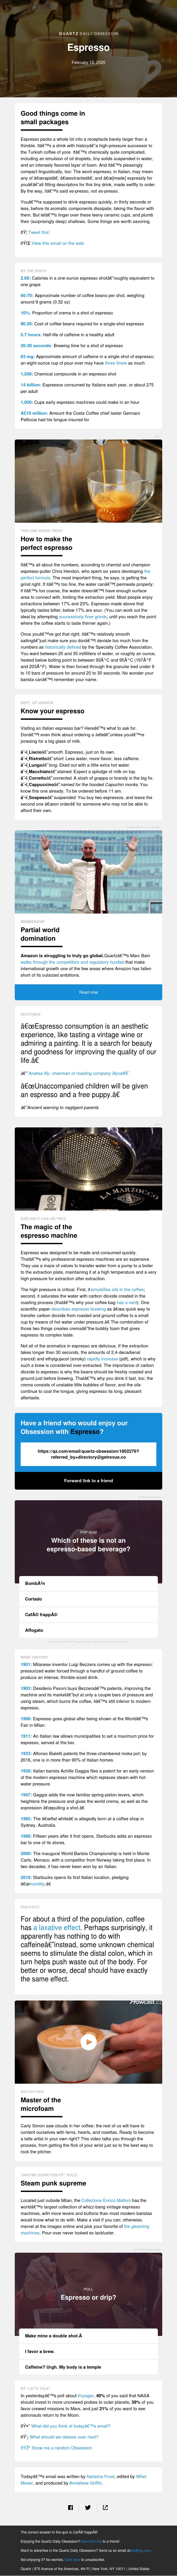 ☕ Espresso: Spilling the beans